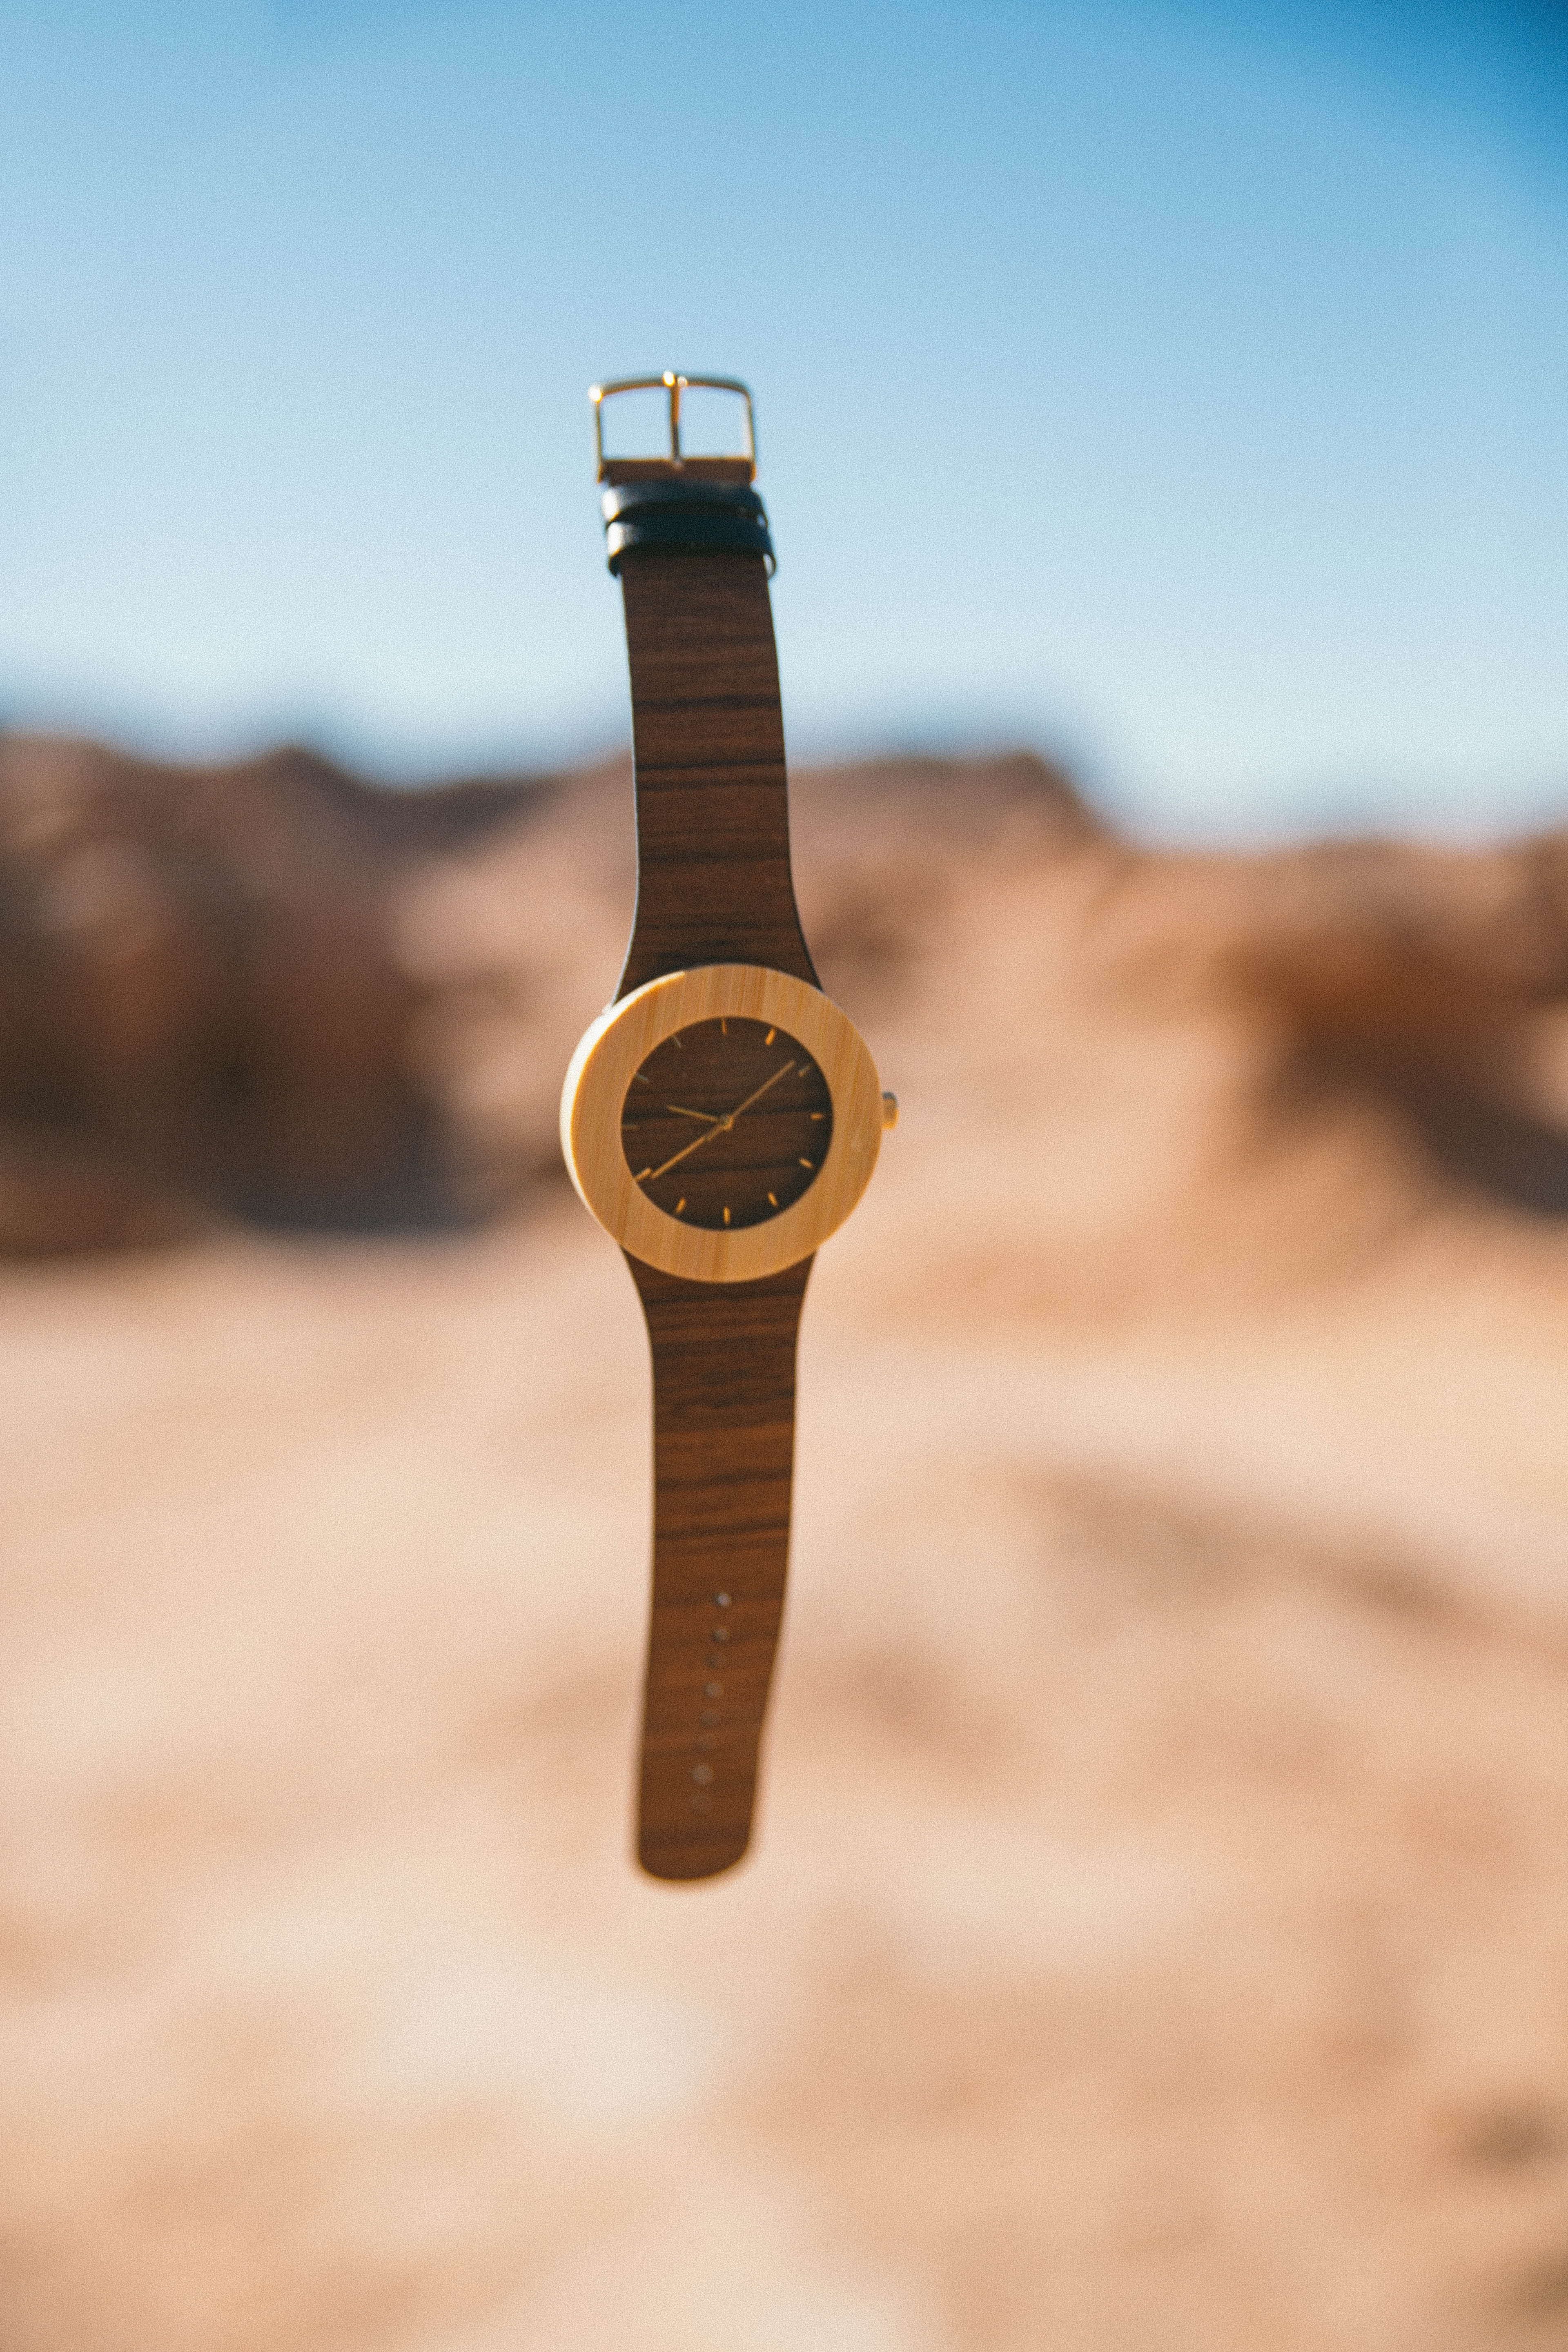 An elegant watch floating in the air above a desert